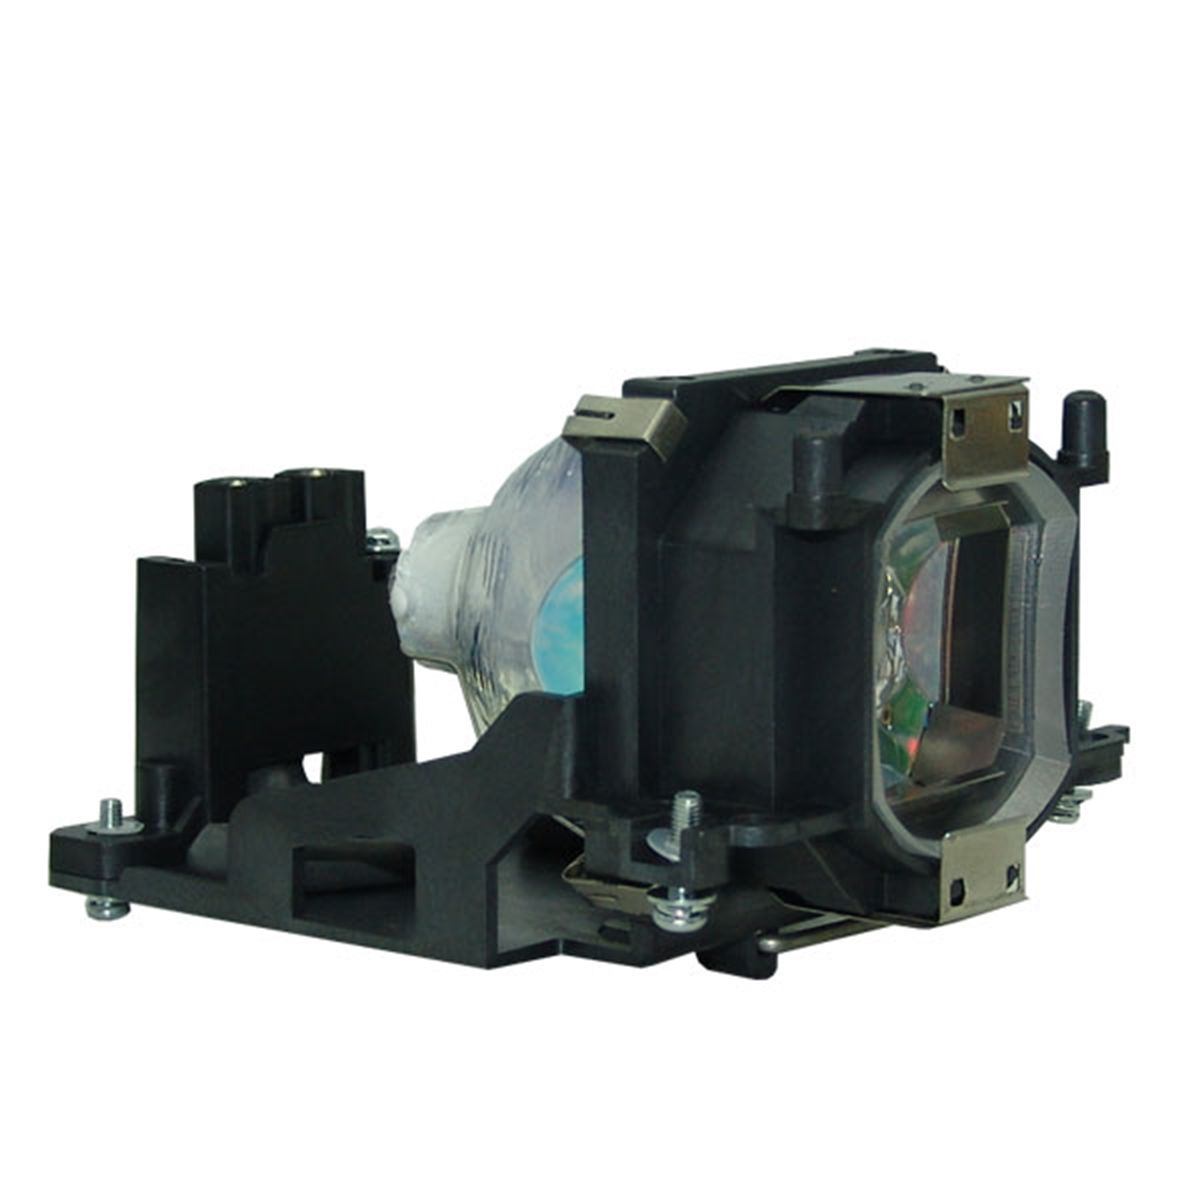 Lamp with Housing by CARSN LMP-H130 Replacement Projector Lamp for Sony HS50 HS51 HS60 VPL-HS50 VPL-HS51 VPL-HS60